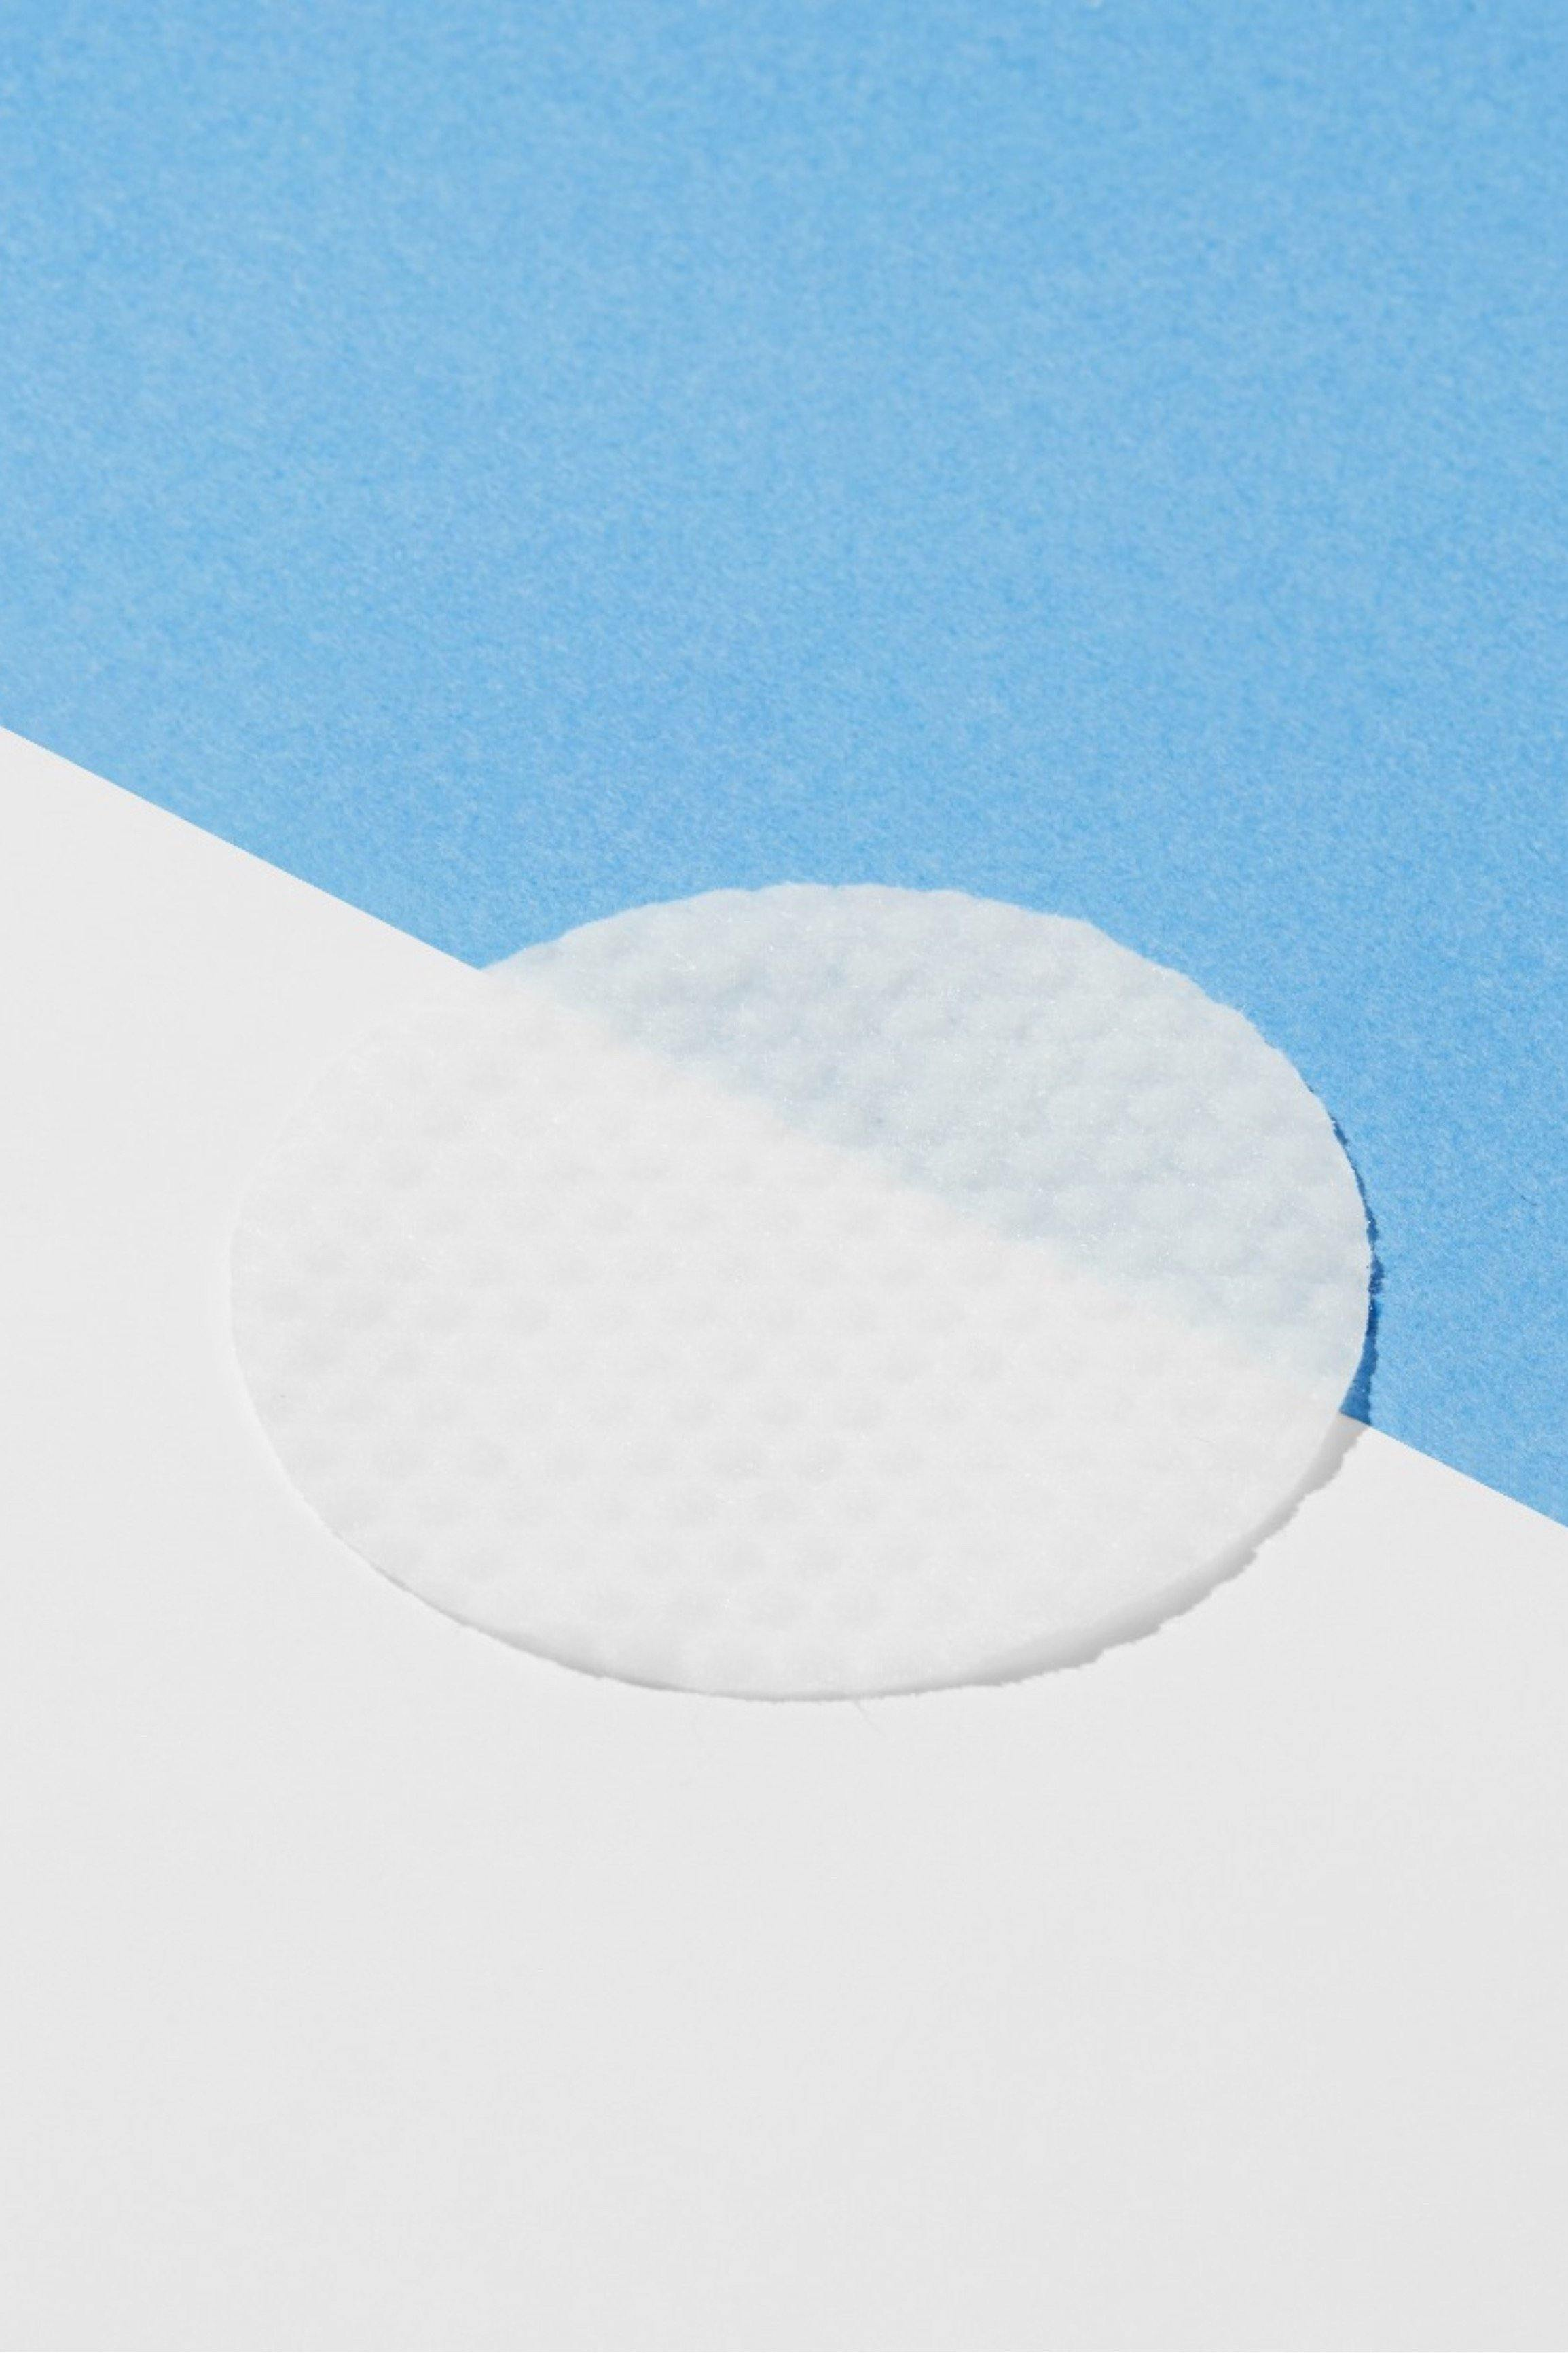 COSRX - One Step Moisture Up Pad - Flawlesscoatboutique